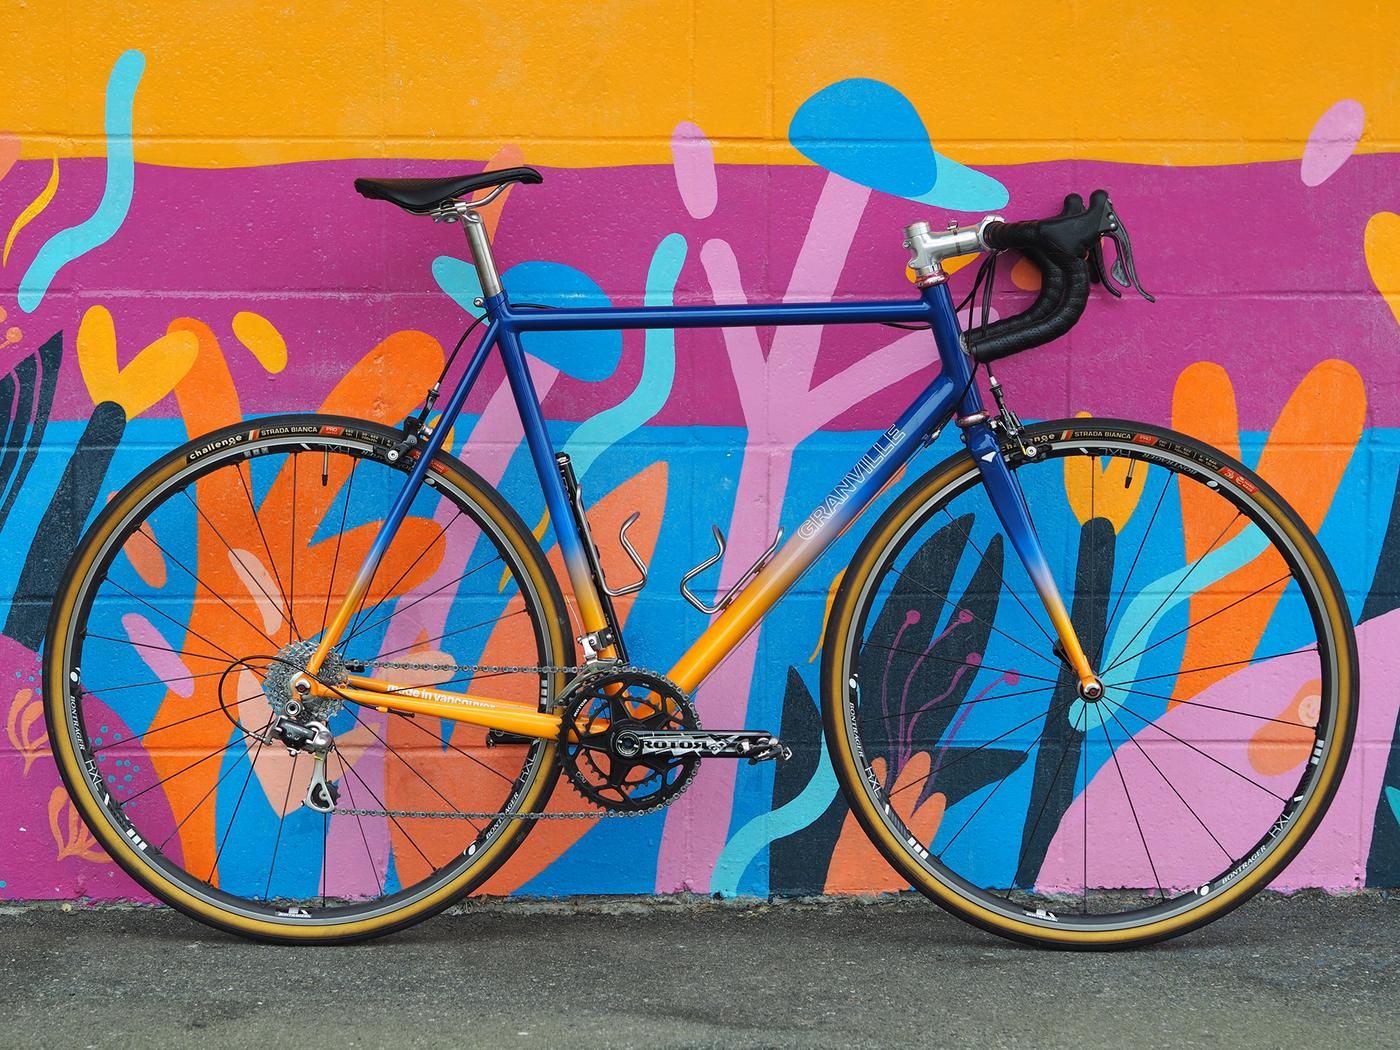 Readers' Rides: Michael's Granville Burly Road Sunset Fade